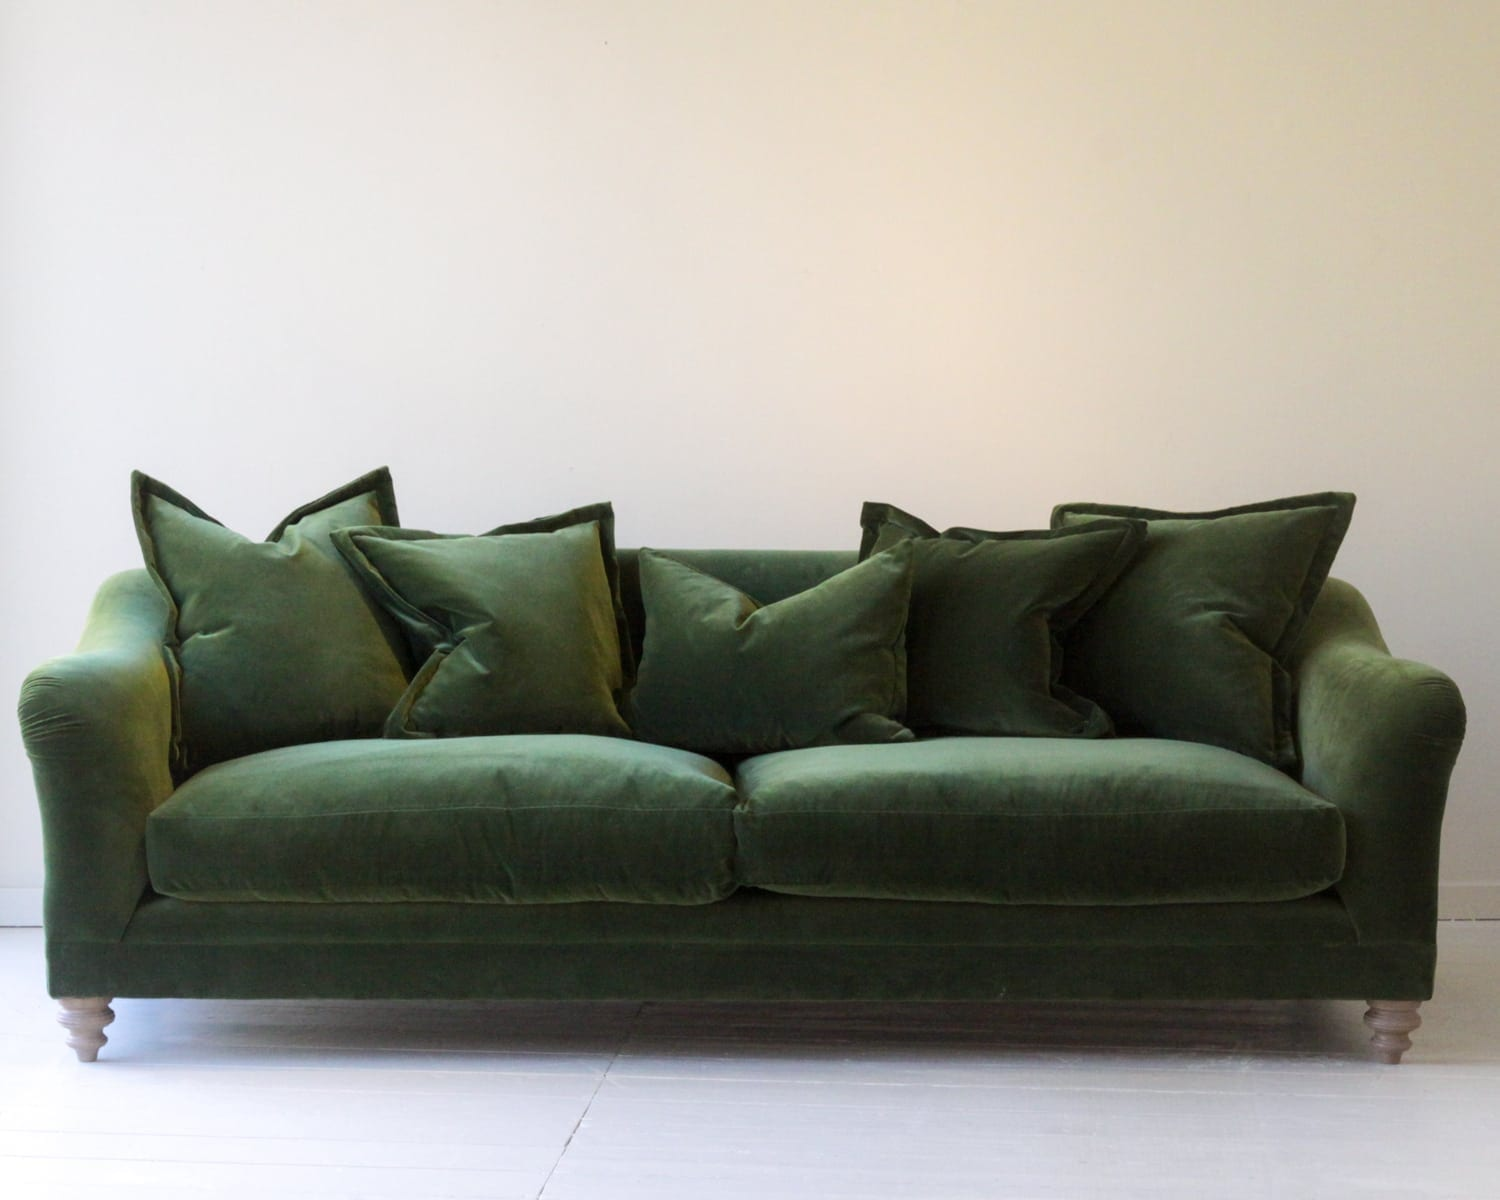 luxury-home-decor-velvet-green-sofa